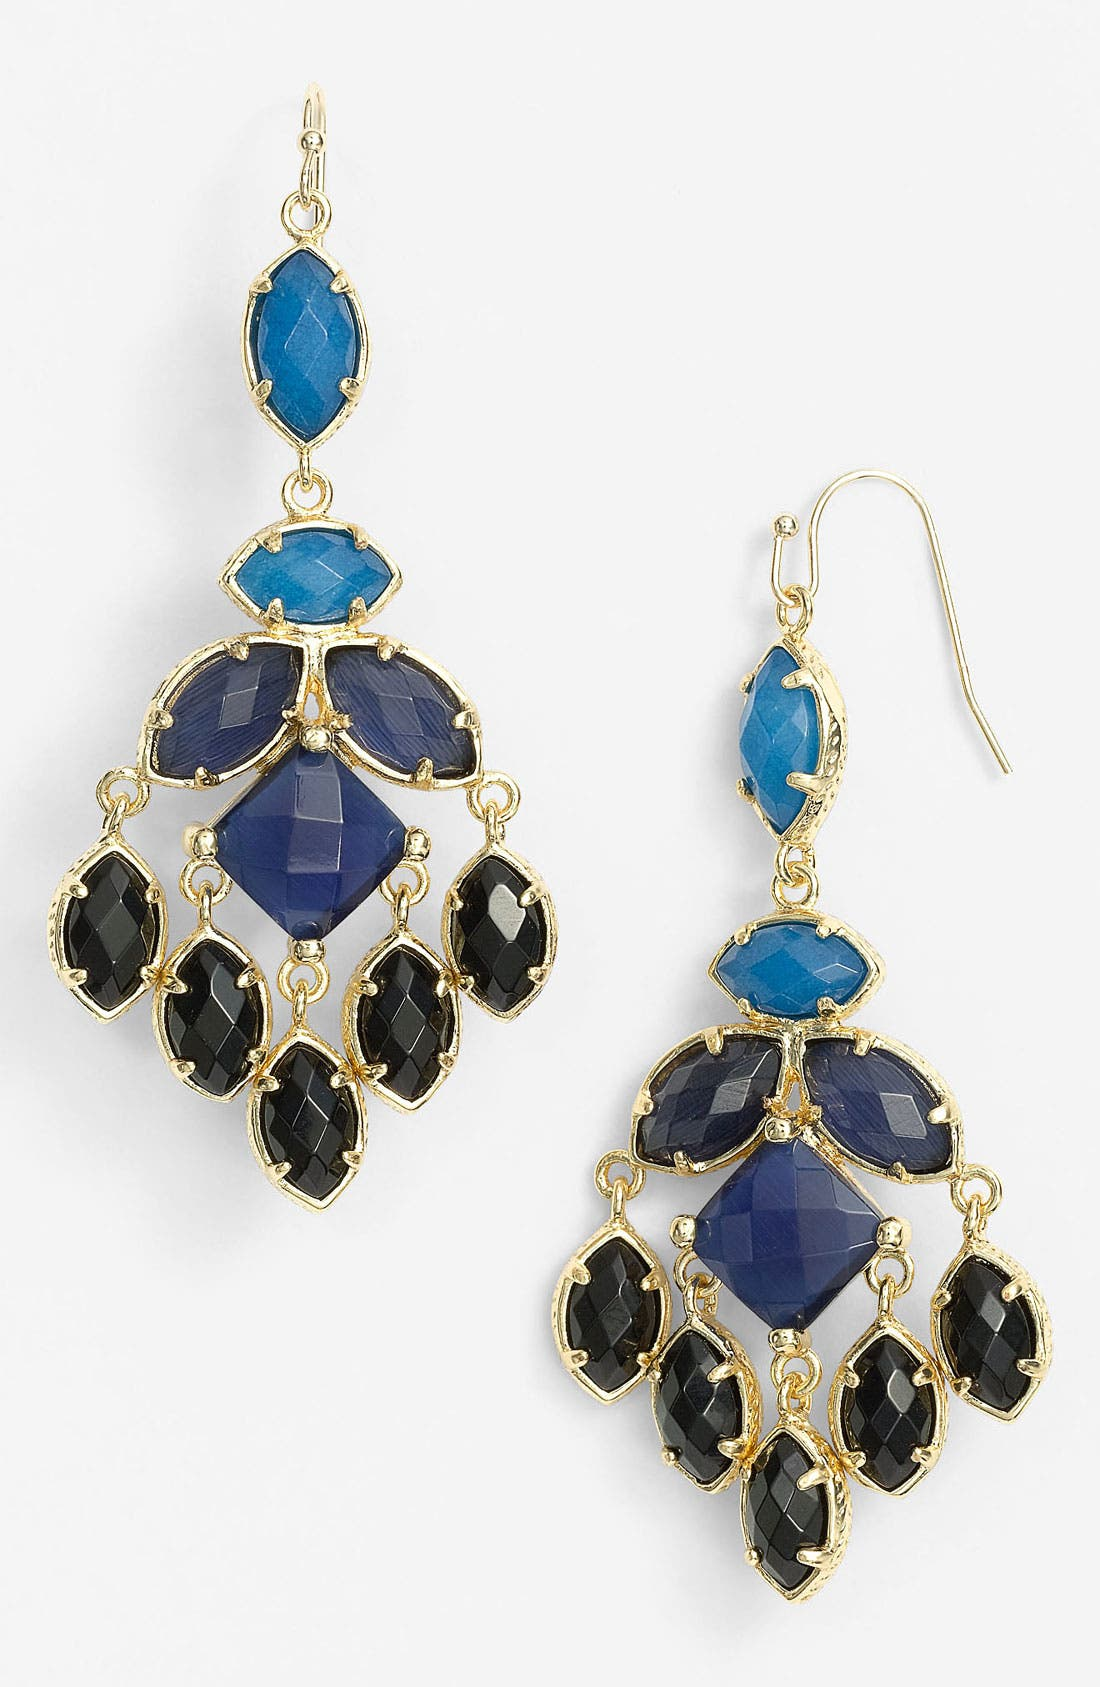 Main Image - Kendra Scott 'Viola' Chandelier Earrings